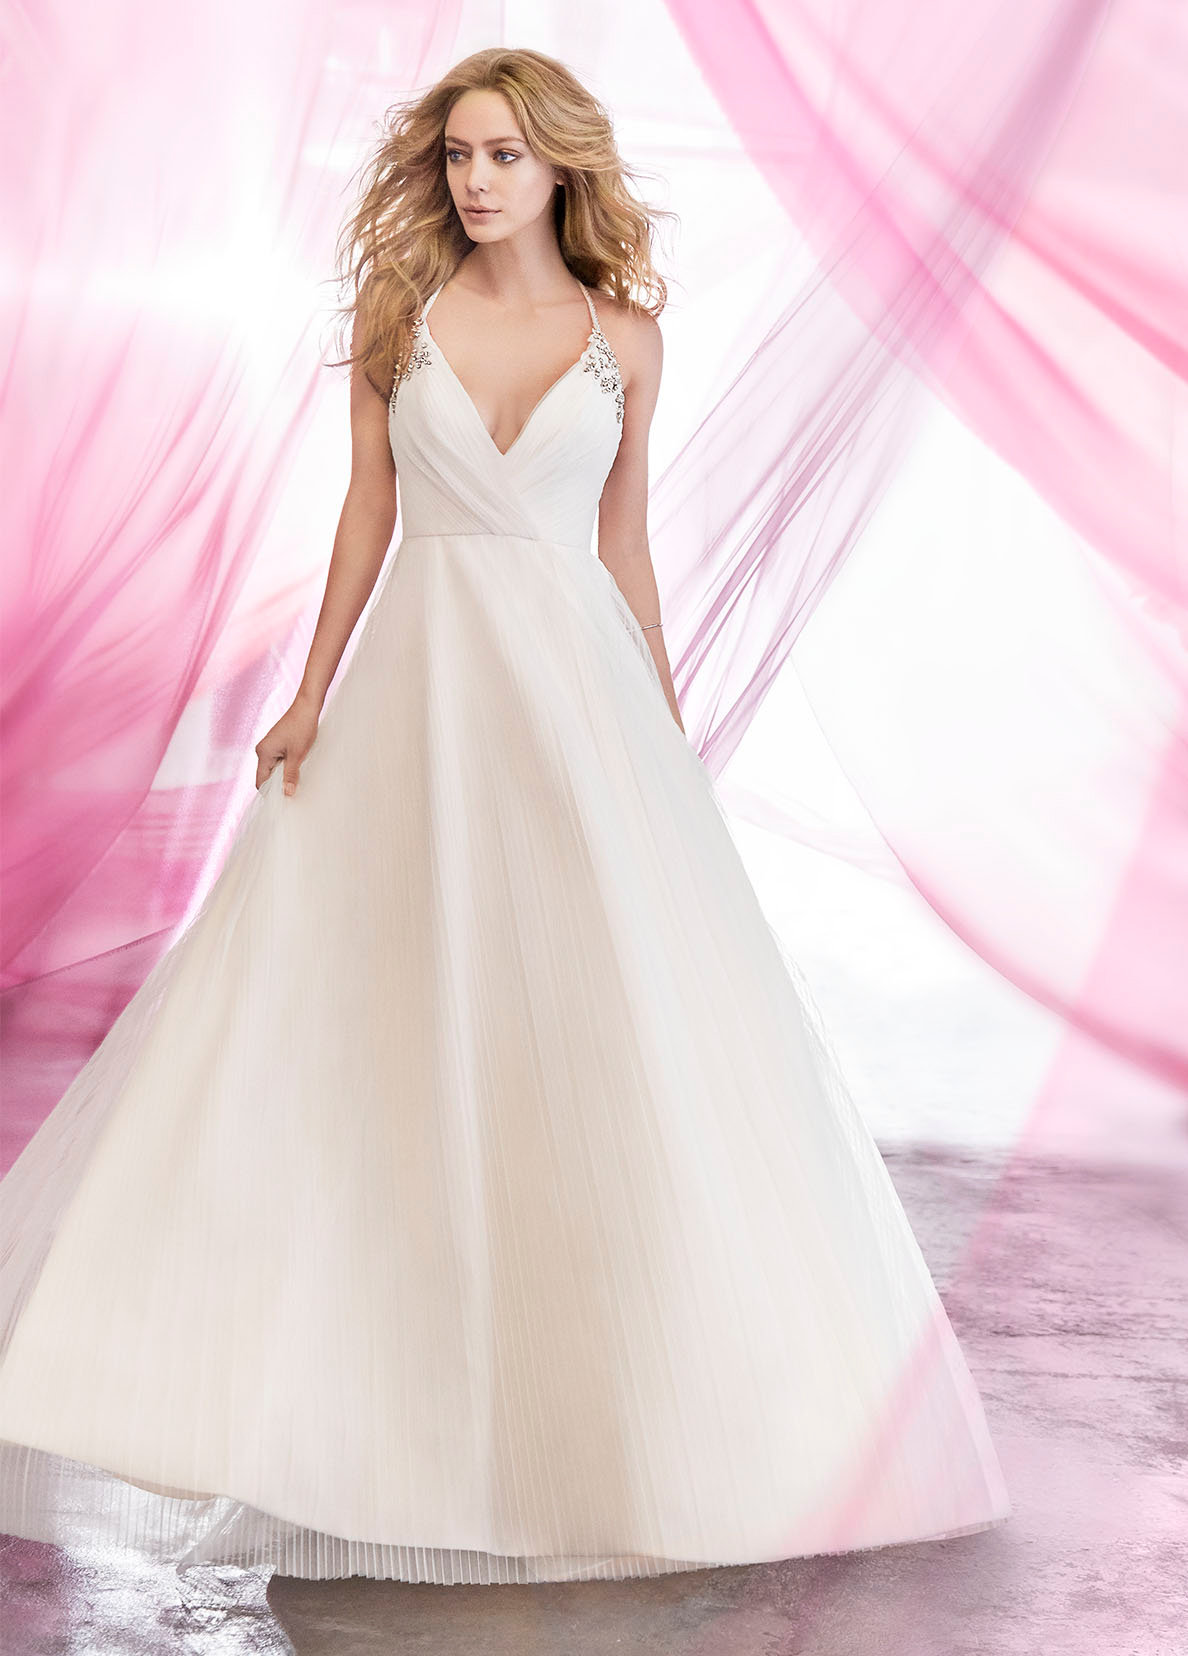 e750fba1ce3 Bridal Gowns and Wedding Dresses by JLM Couture - Style 1605